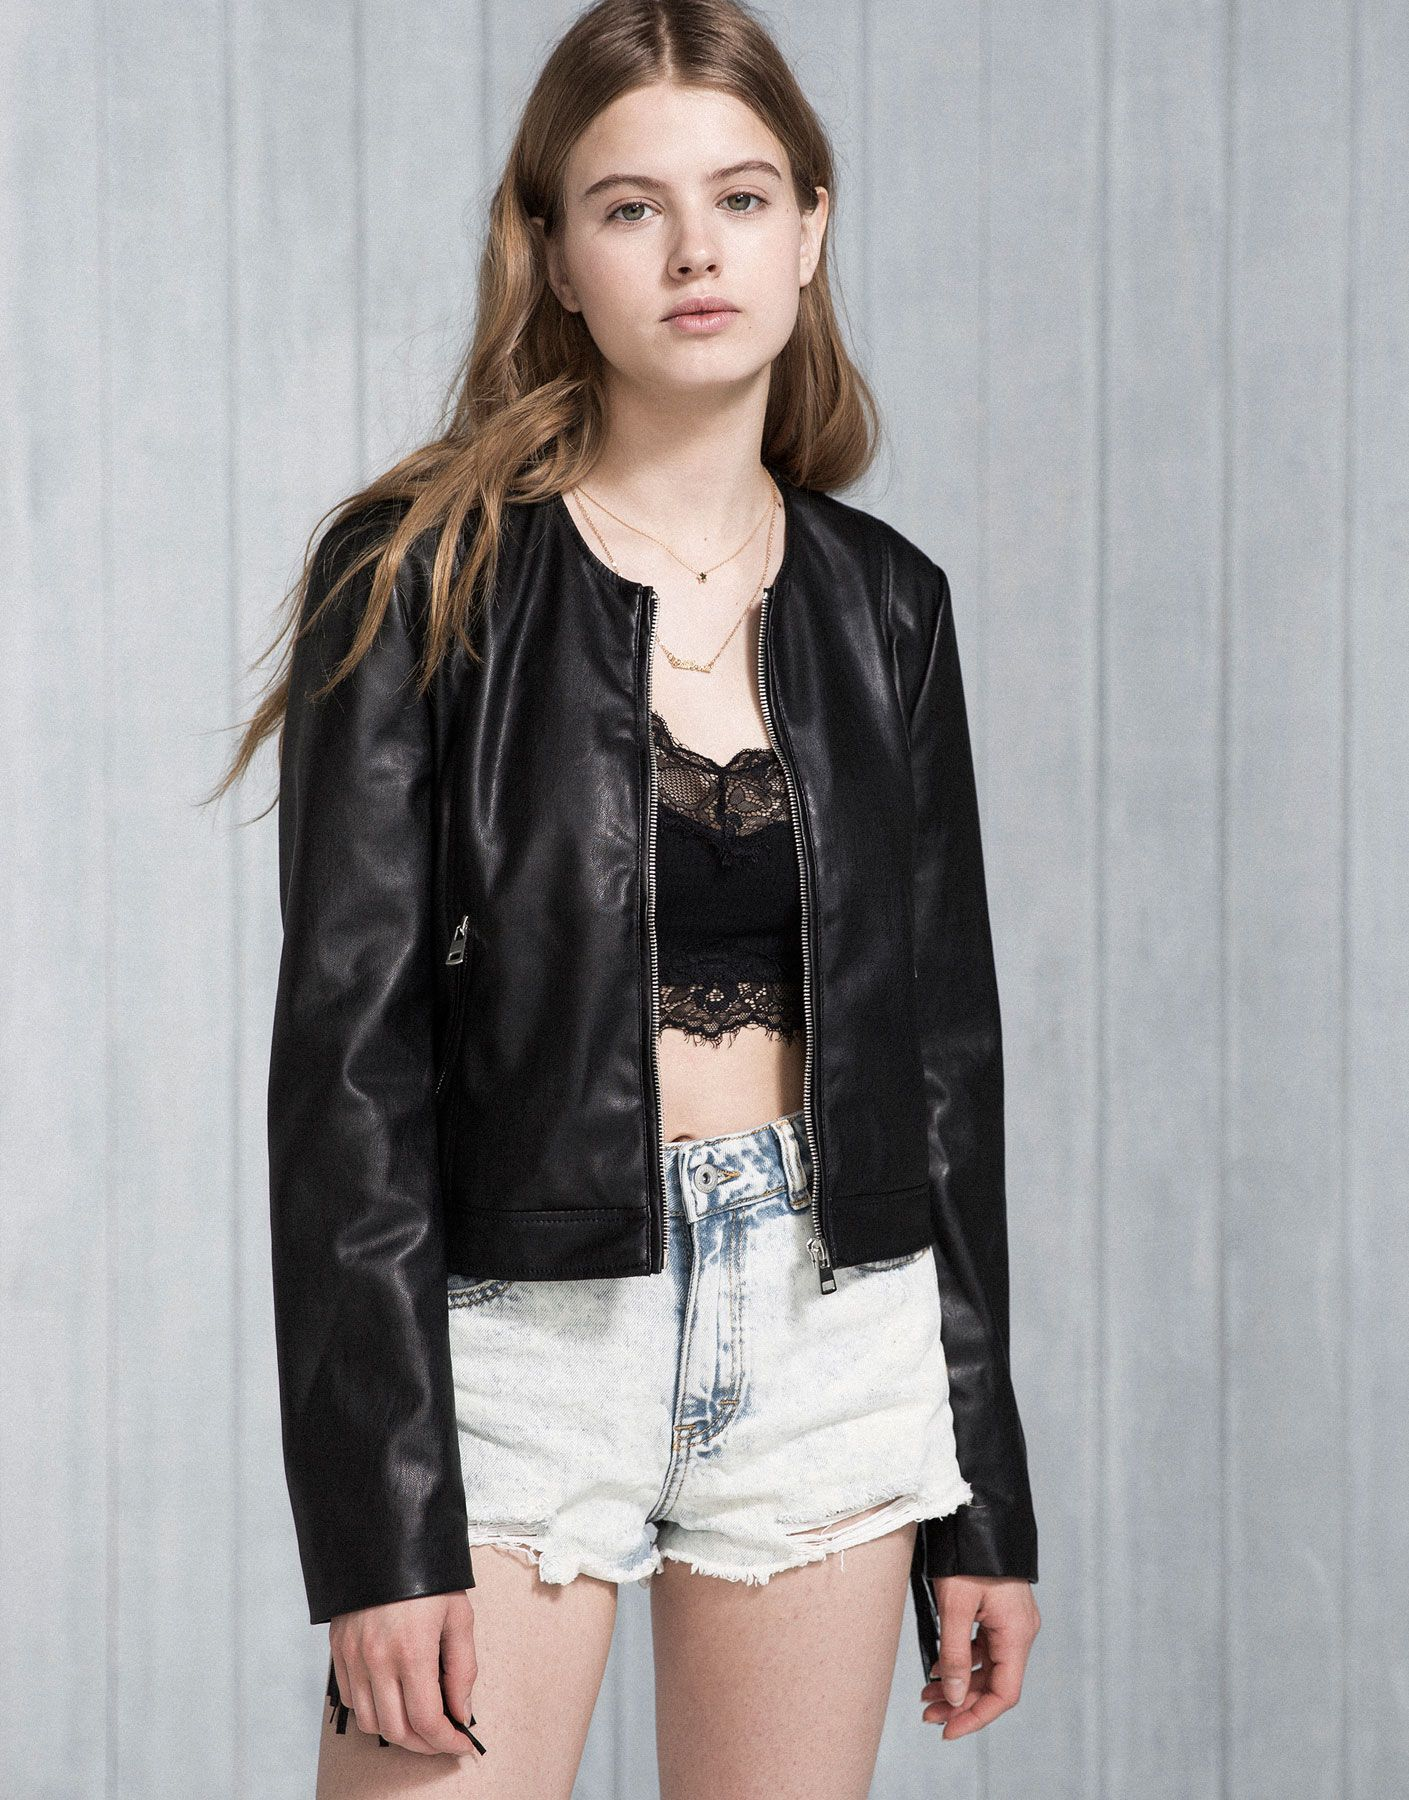 FRINGED FAUX LEATHER JACKET PACIFIC GIRLS WOMAN PULL